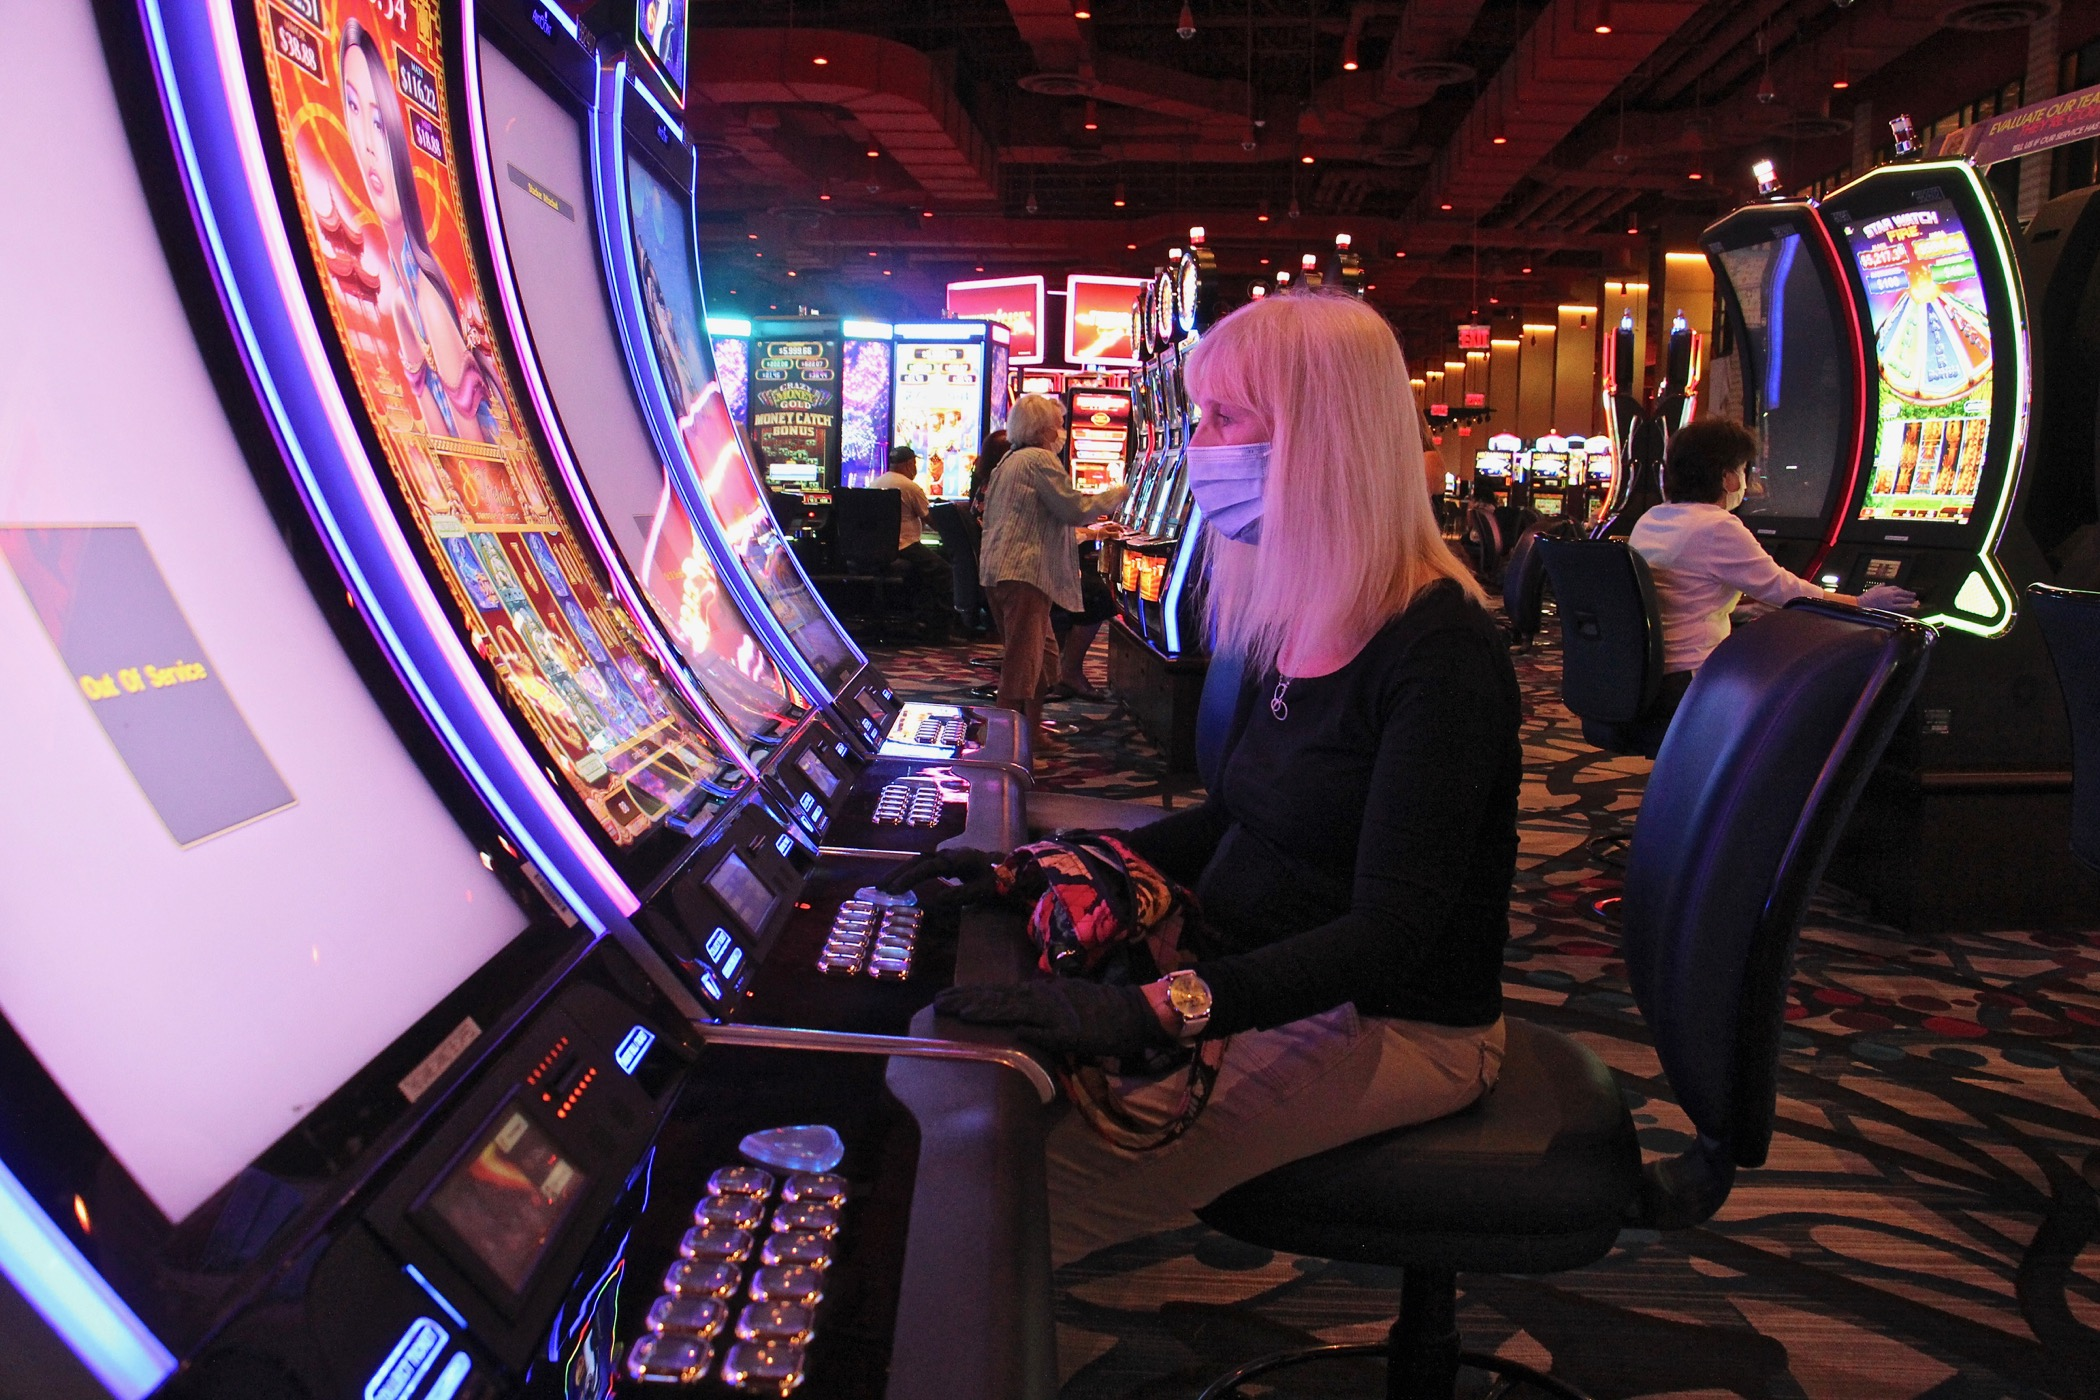 Casino Gambling Returns To Chester After Coronavirus Closure Whyy